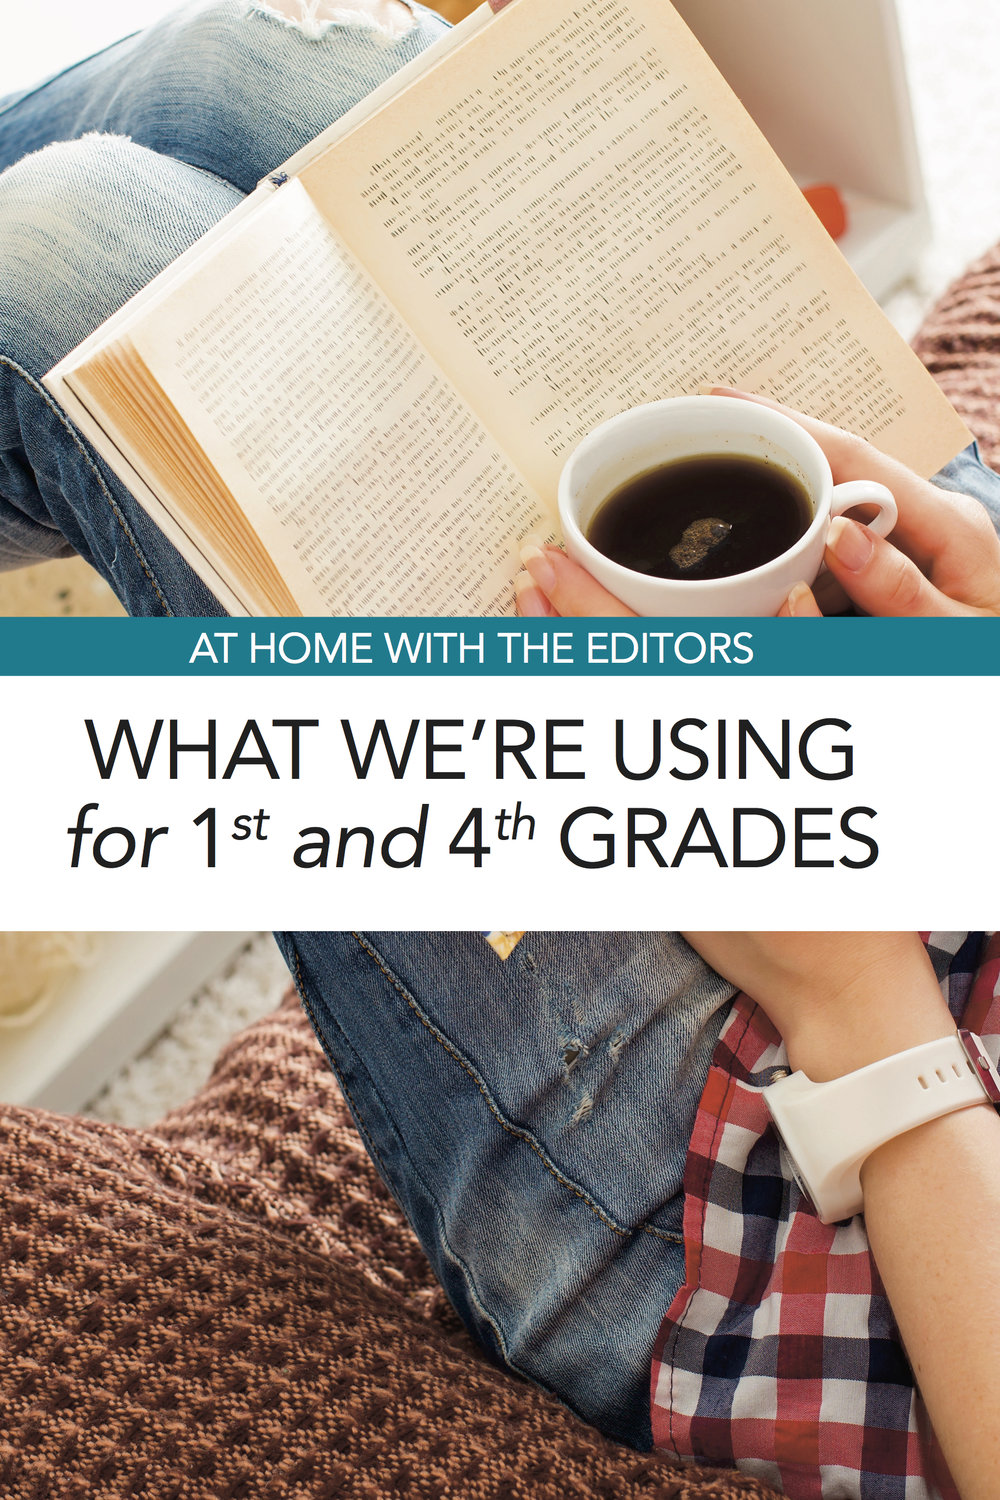 At Home with the Editors: 4th Grade and 1st Grade Curriculum